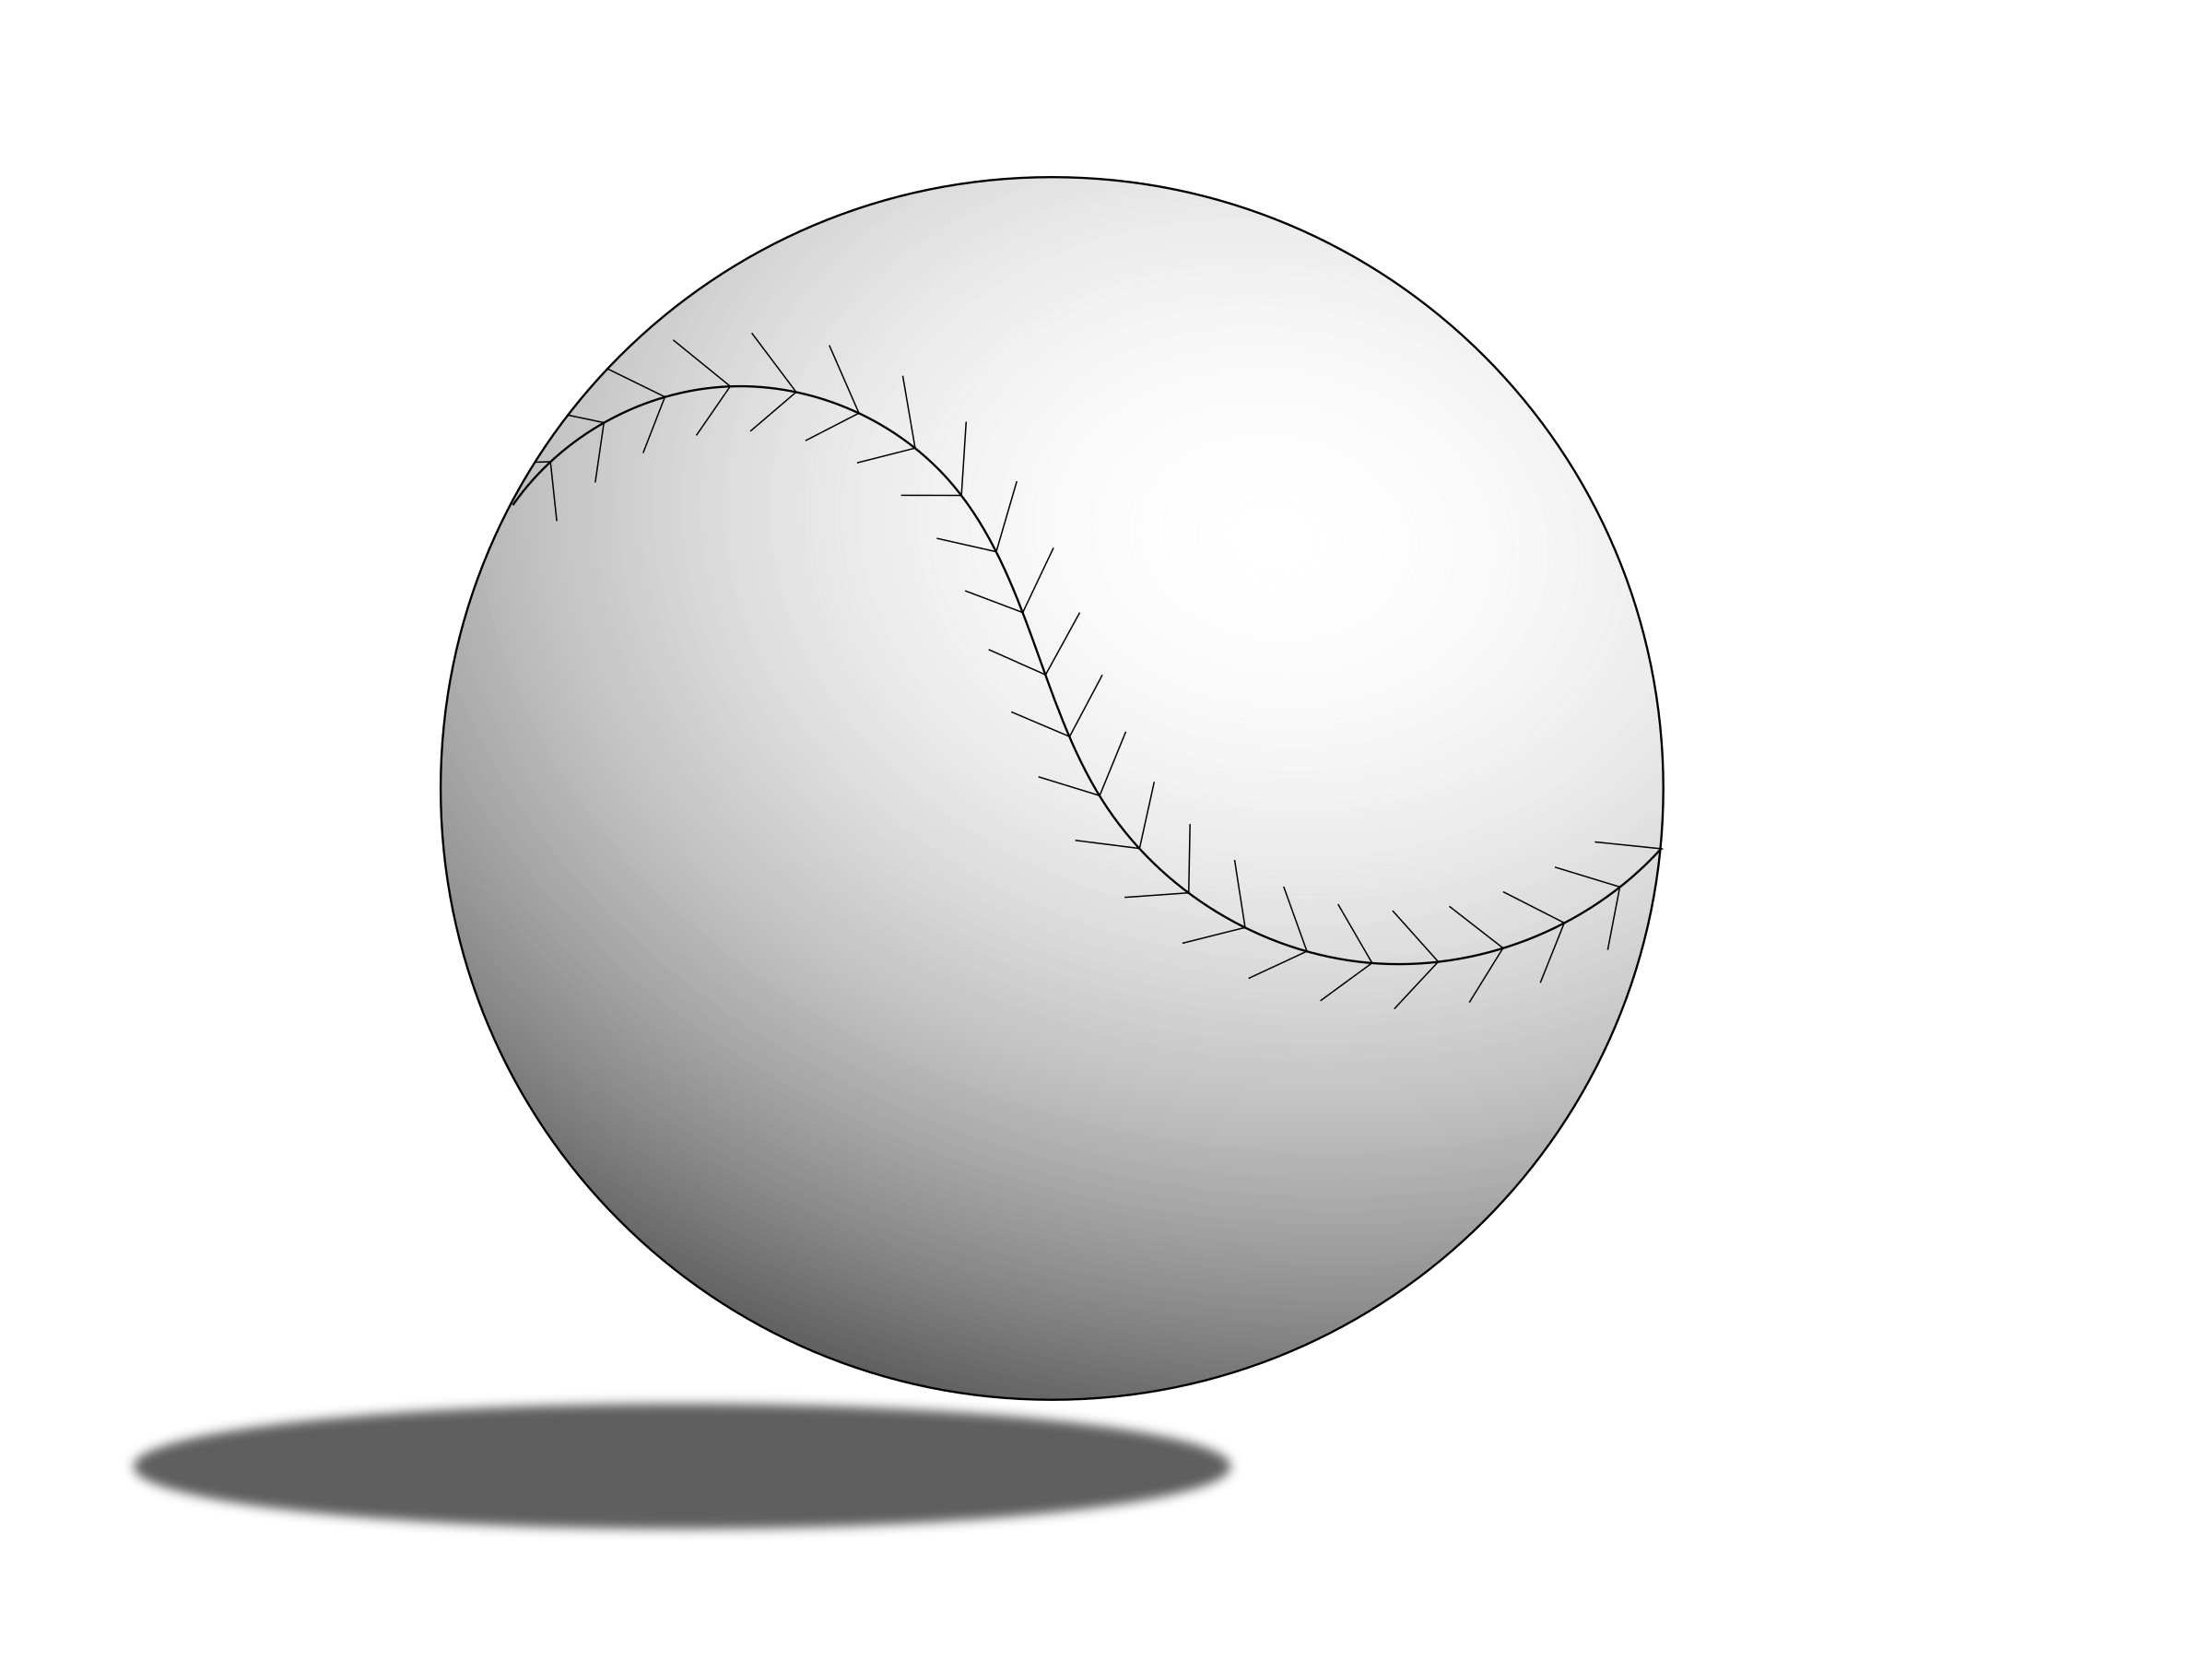 Sphere clipart design. Baseball ball big image